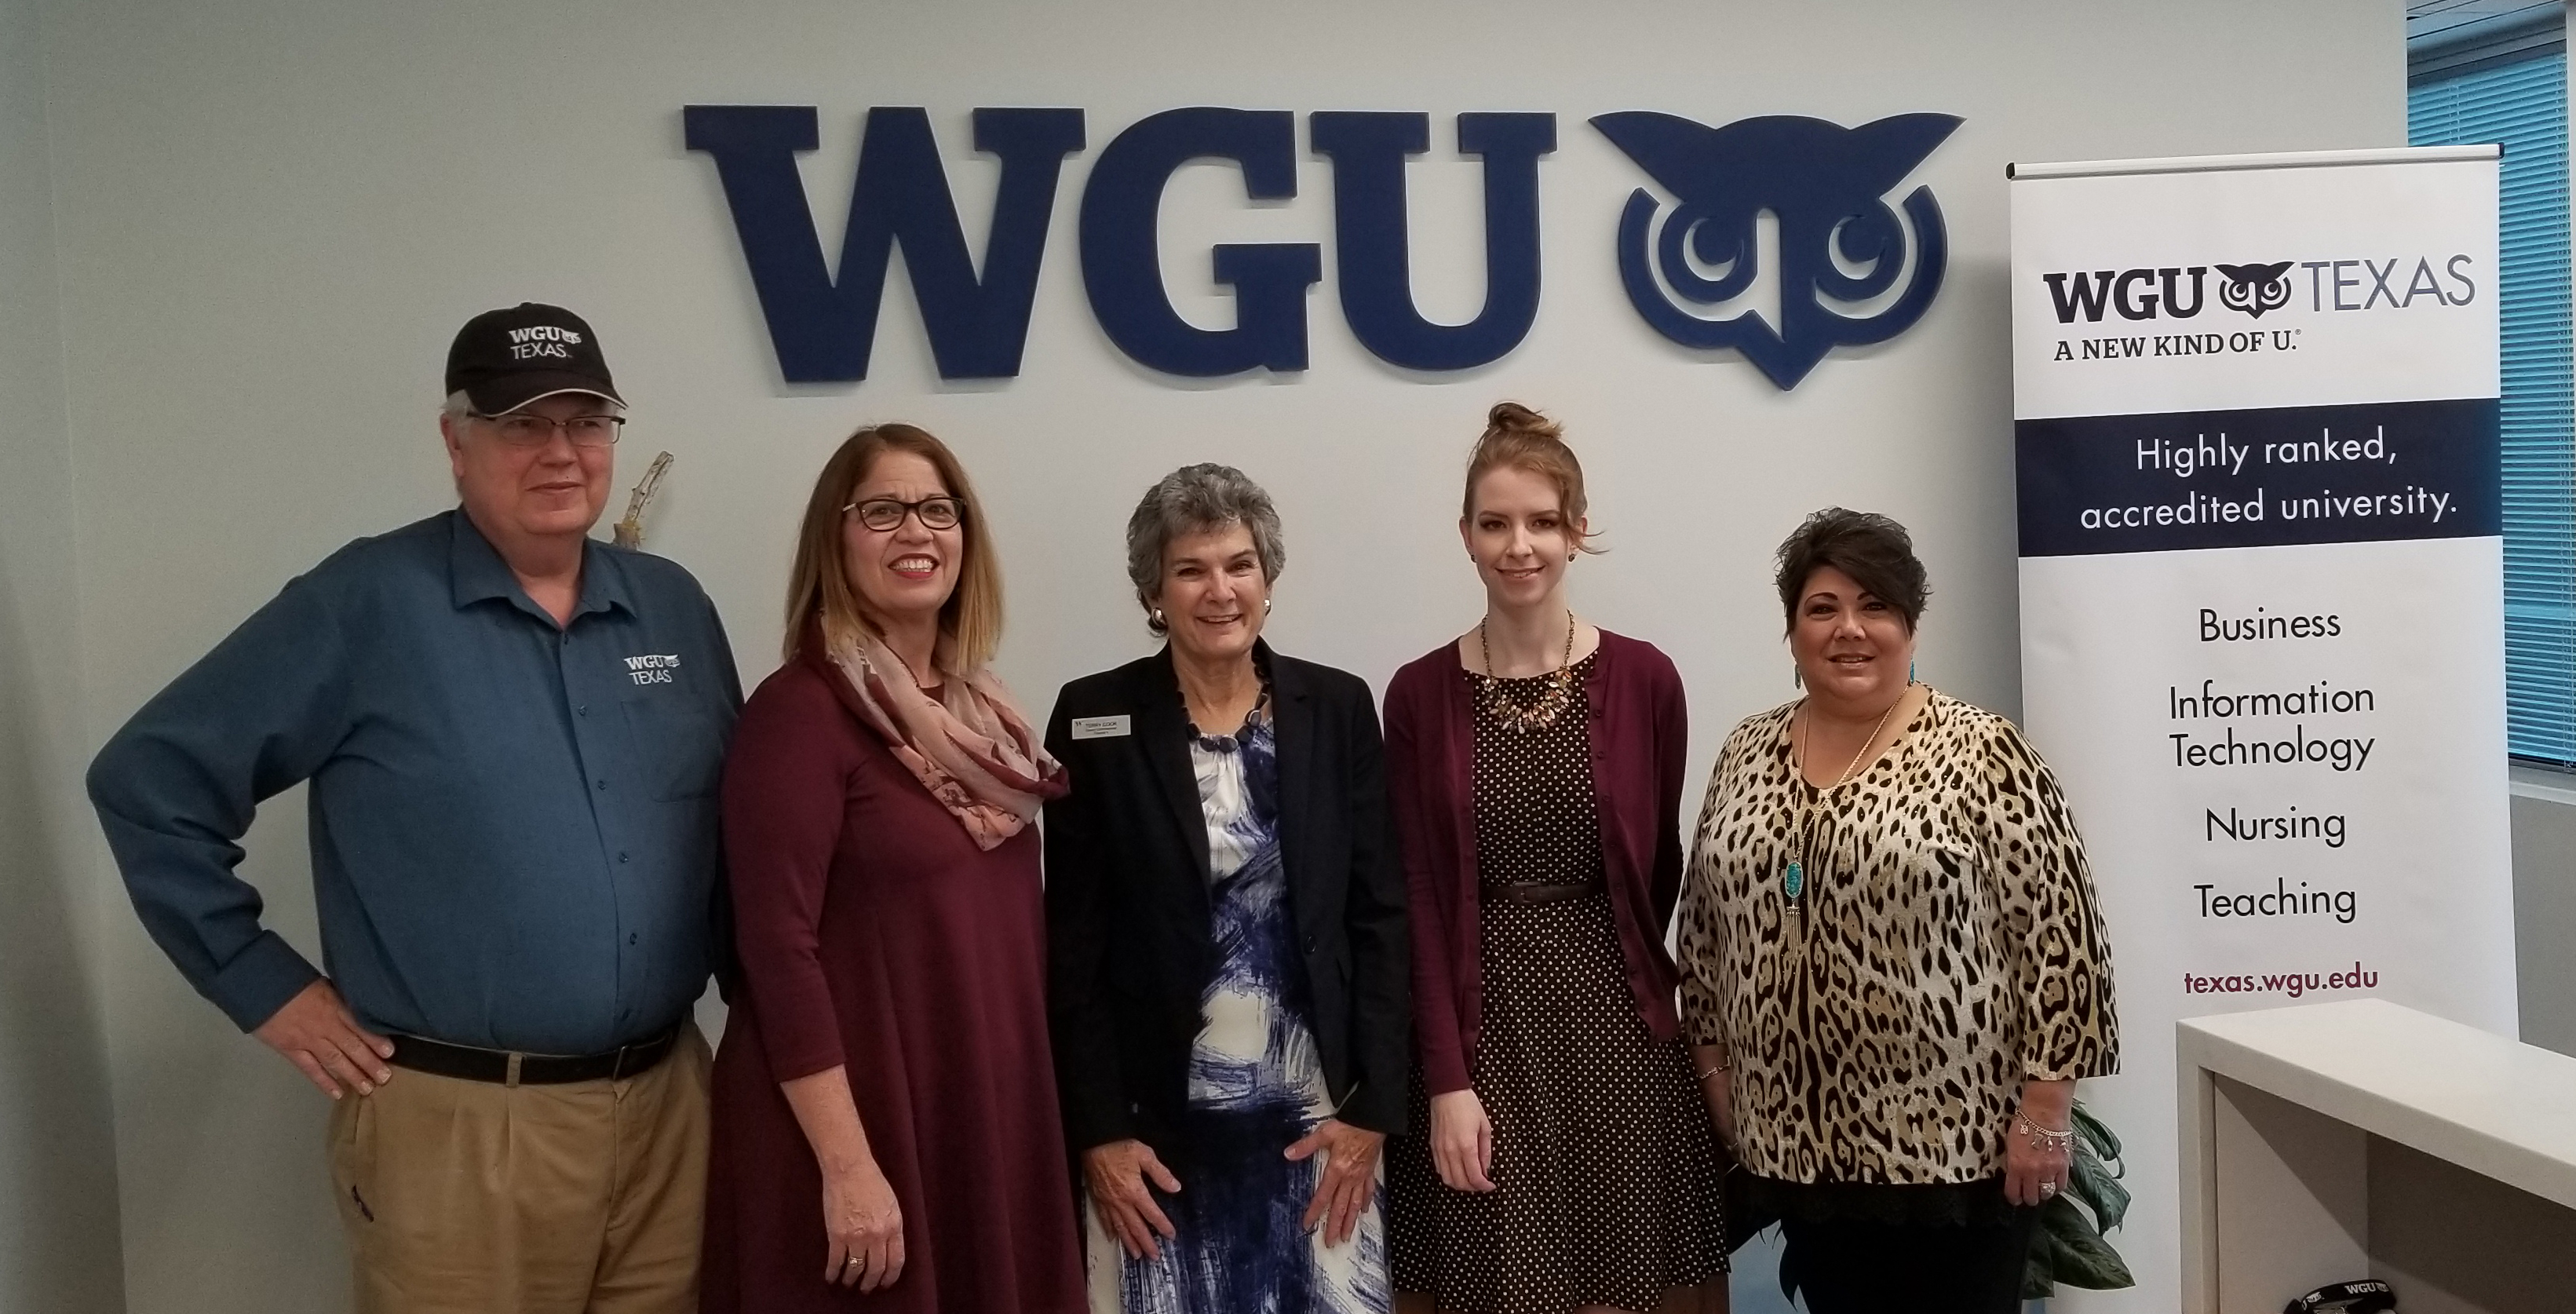 Pictured left to right are Jim Johnson, WGU Community Relations Manager; Nancy Fitzgerald; WGU Texas Office Manager; Commissioner Cook; Emily LaBrecque, WGU Enrollment Counselor, Business College; and Ann Cruz, Enrollment Counselor, Business College.